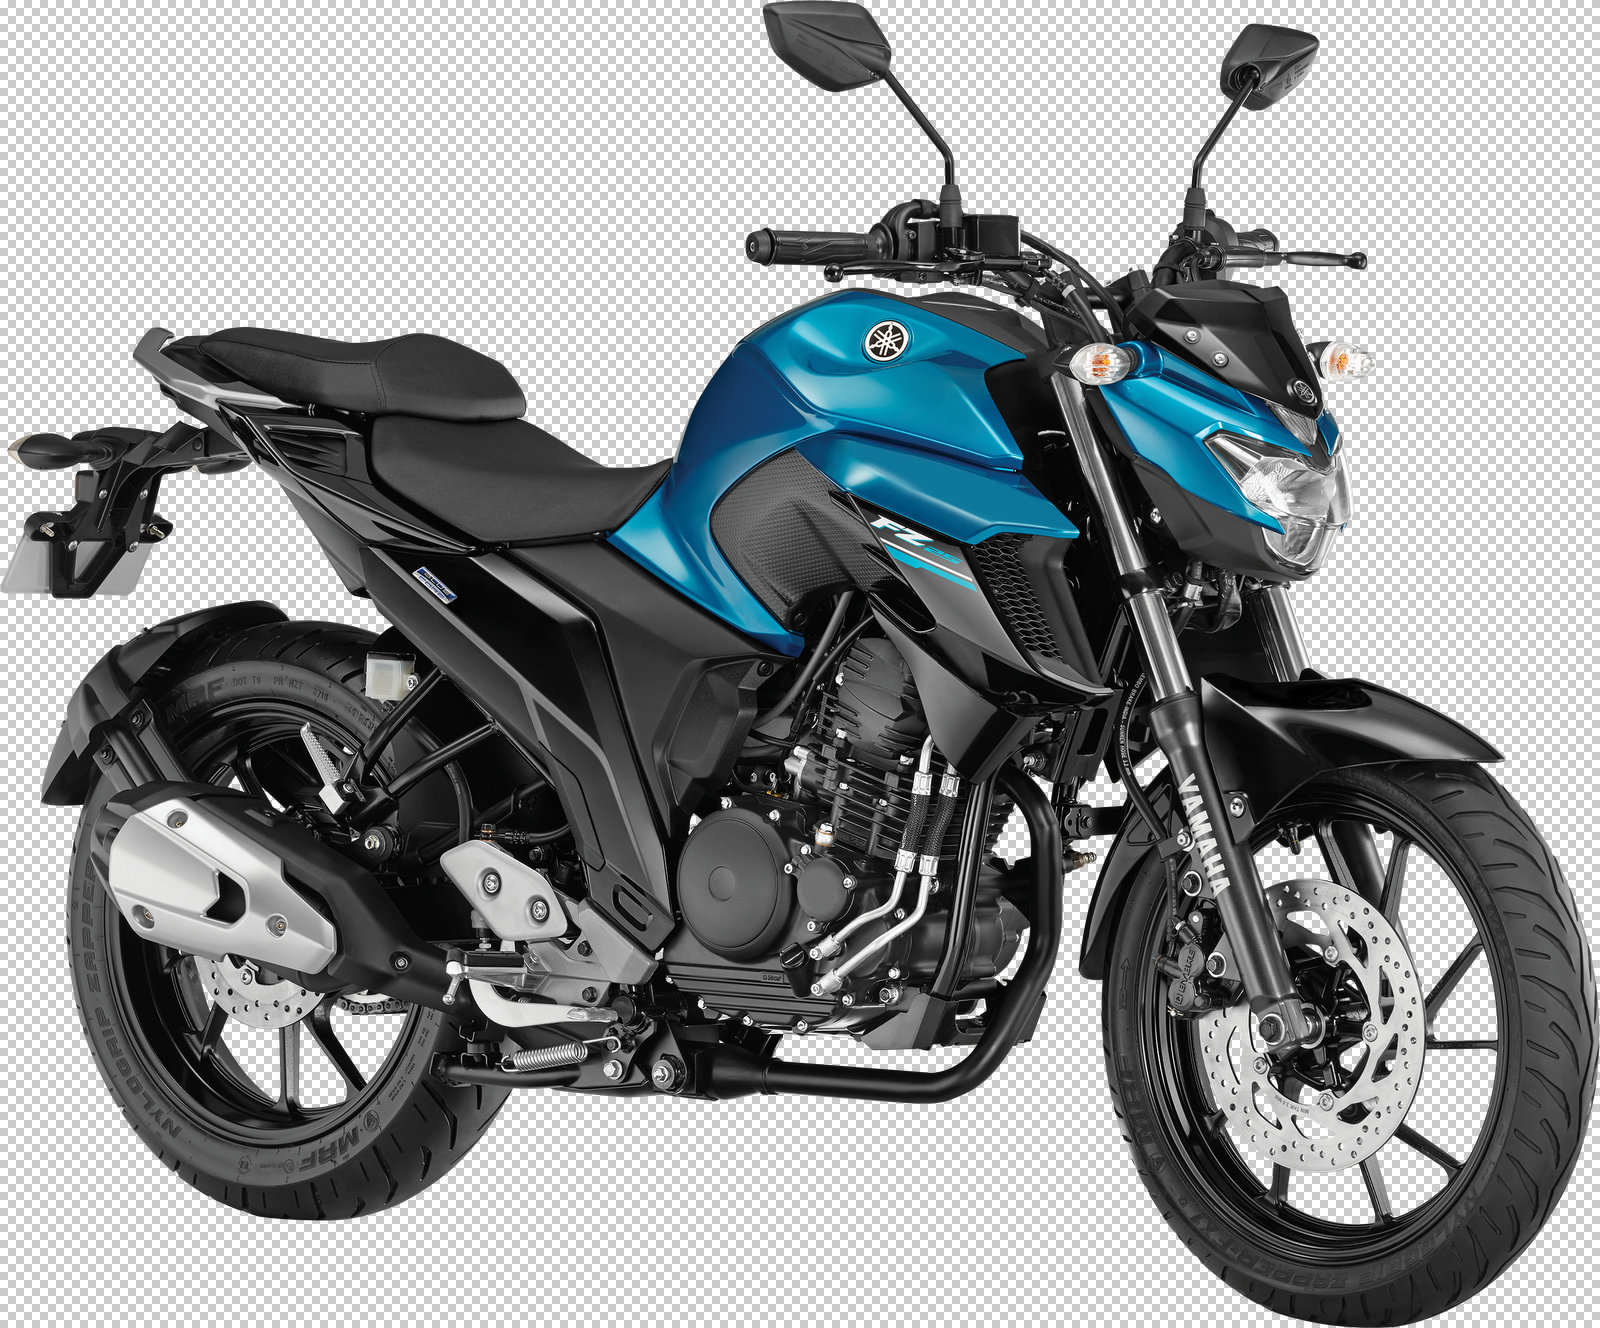 yamaha it. the new yamaha fz-25 has bright future in india with price tag it come with.